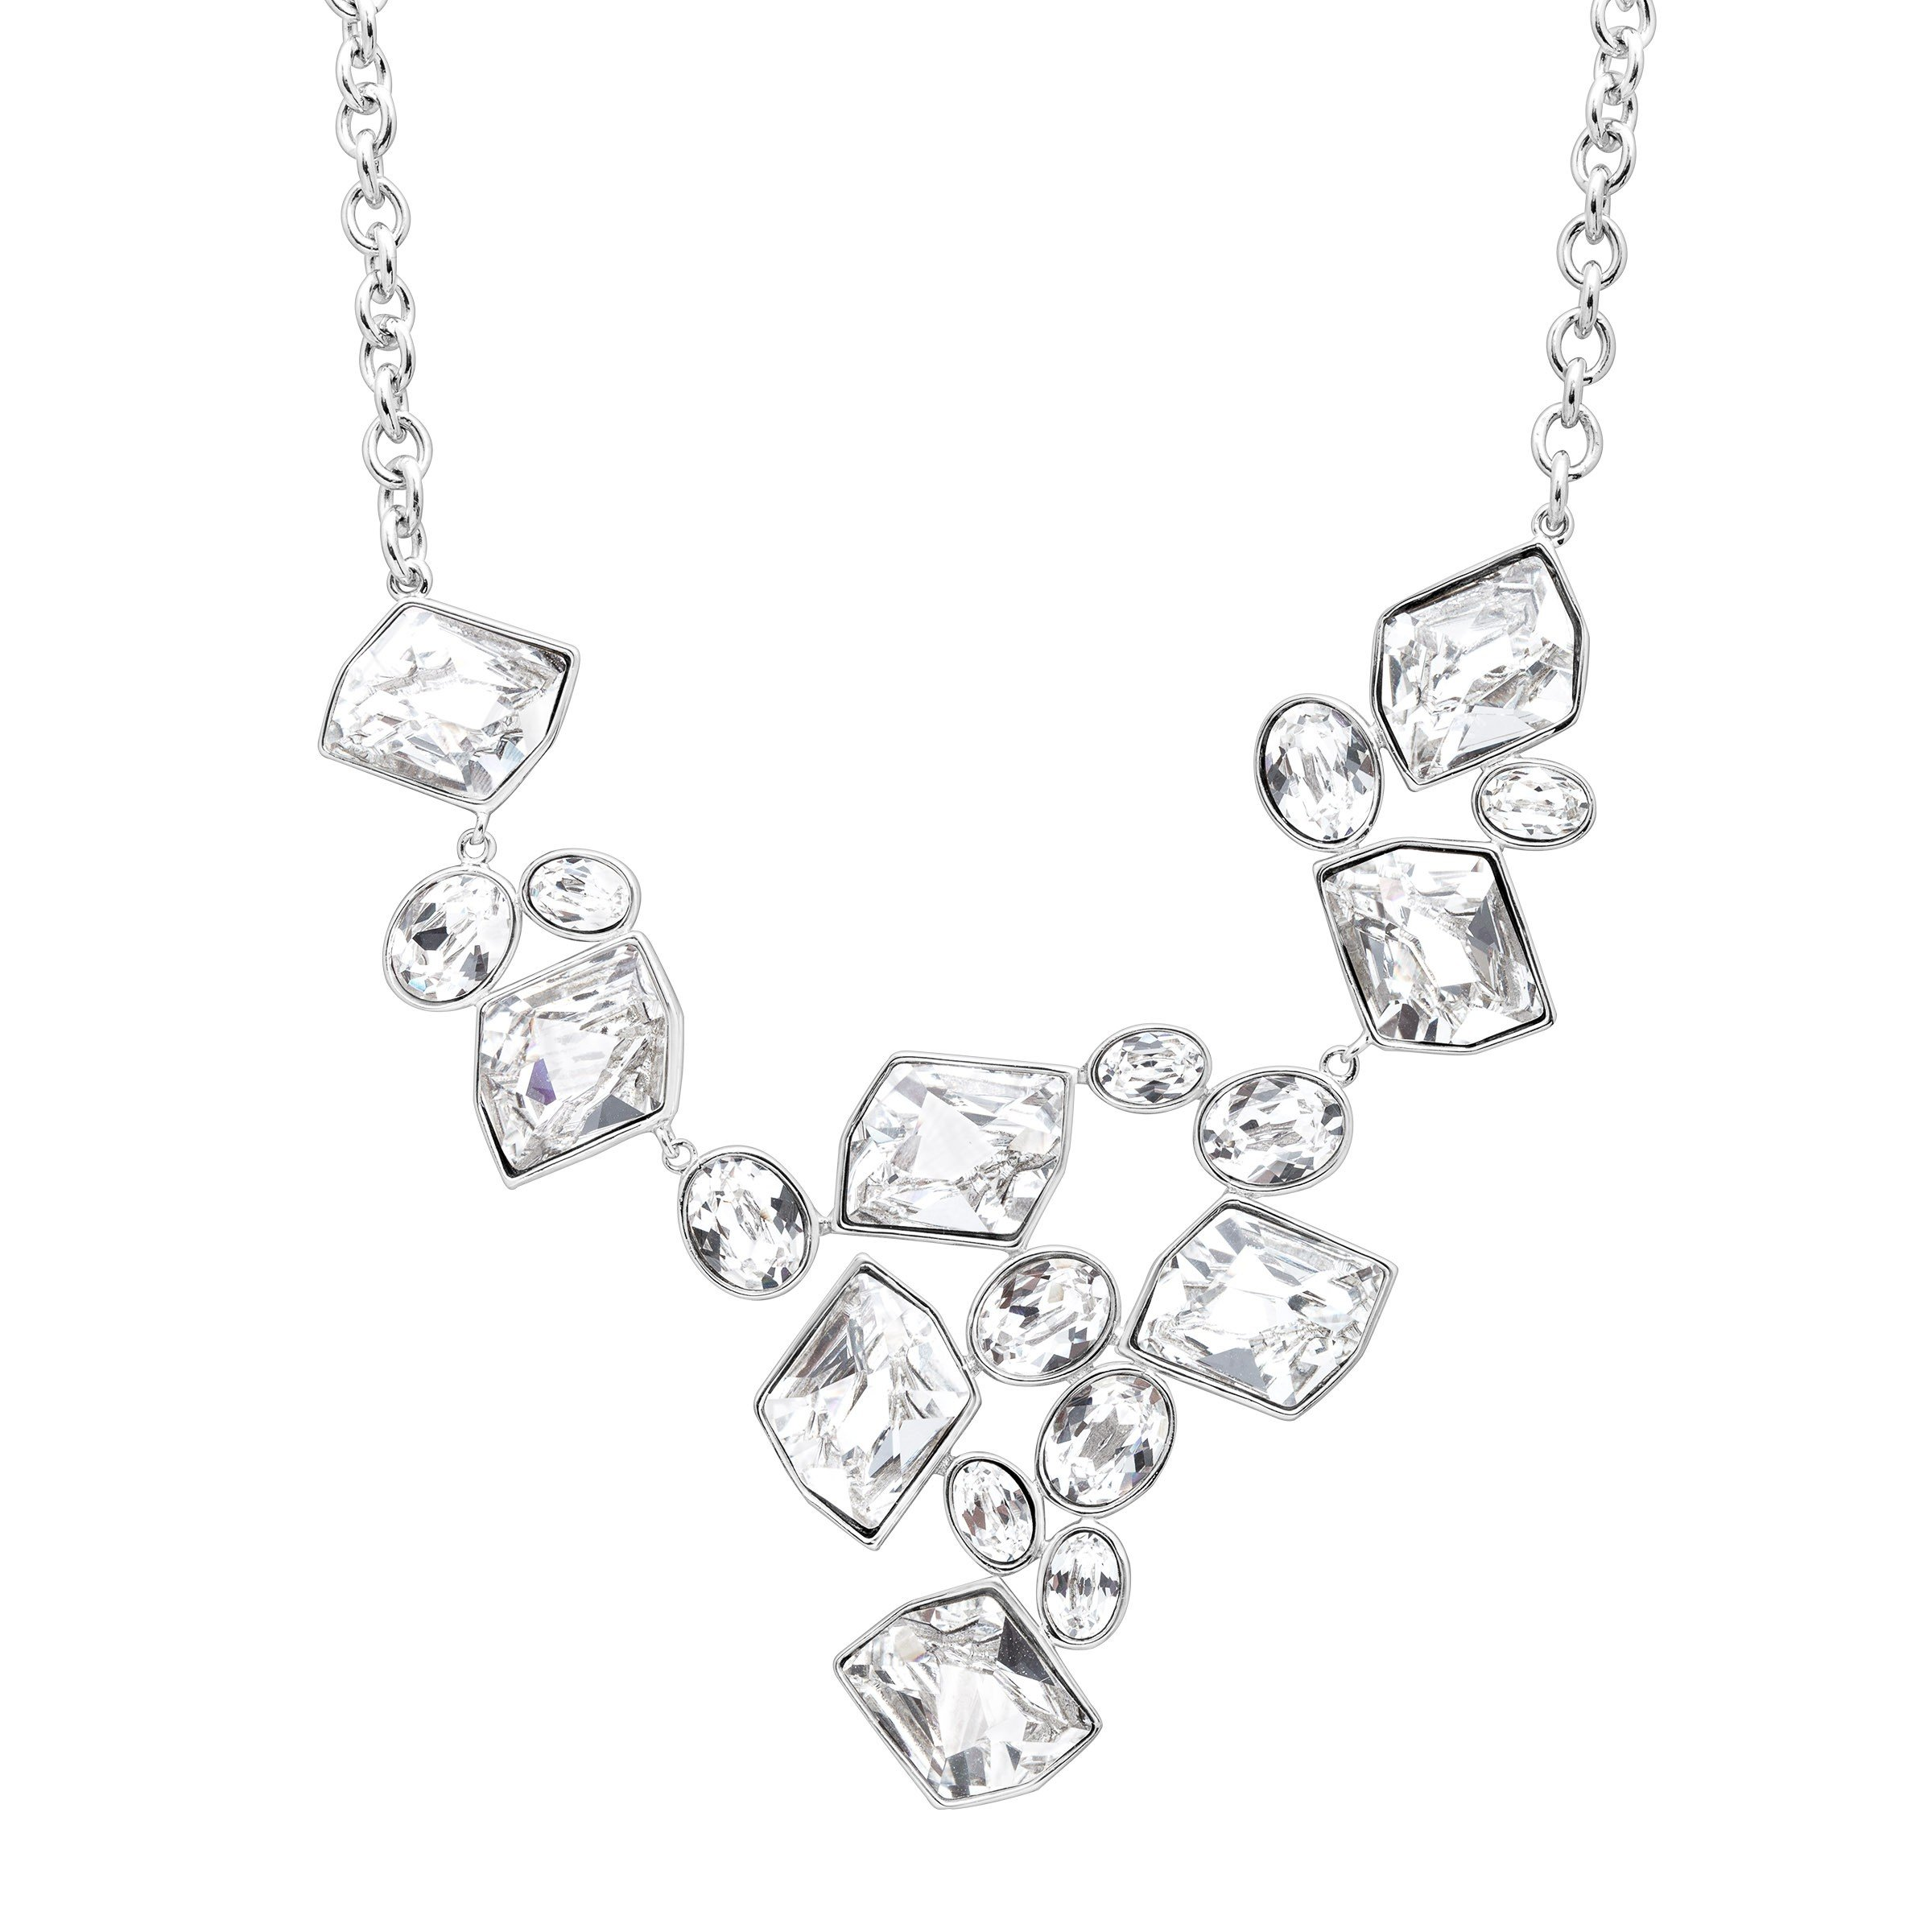 Crystaluxe V-Shape Necklace with Swarovski Crystals in Sterling Silver